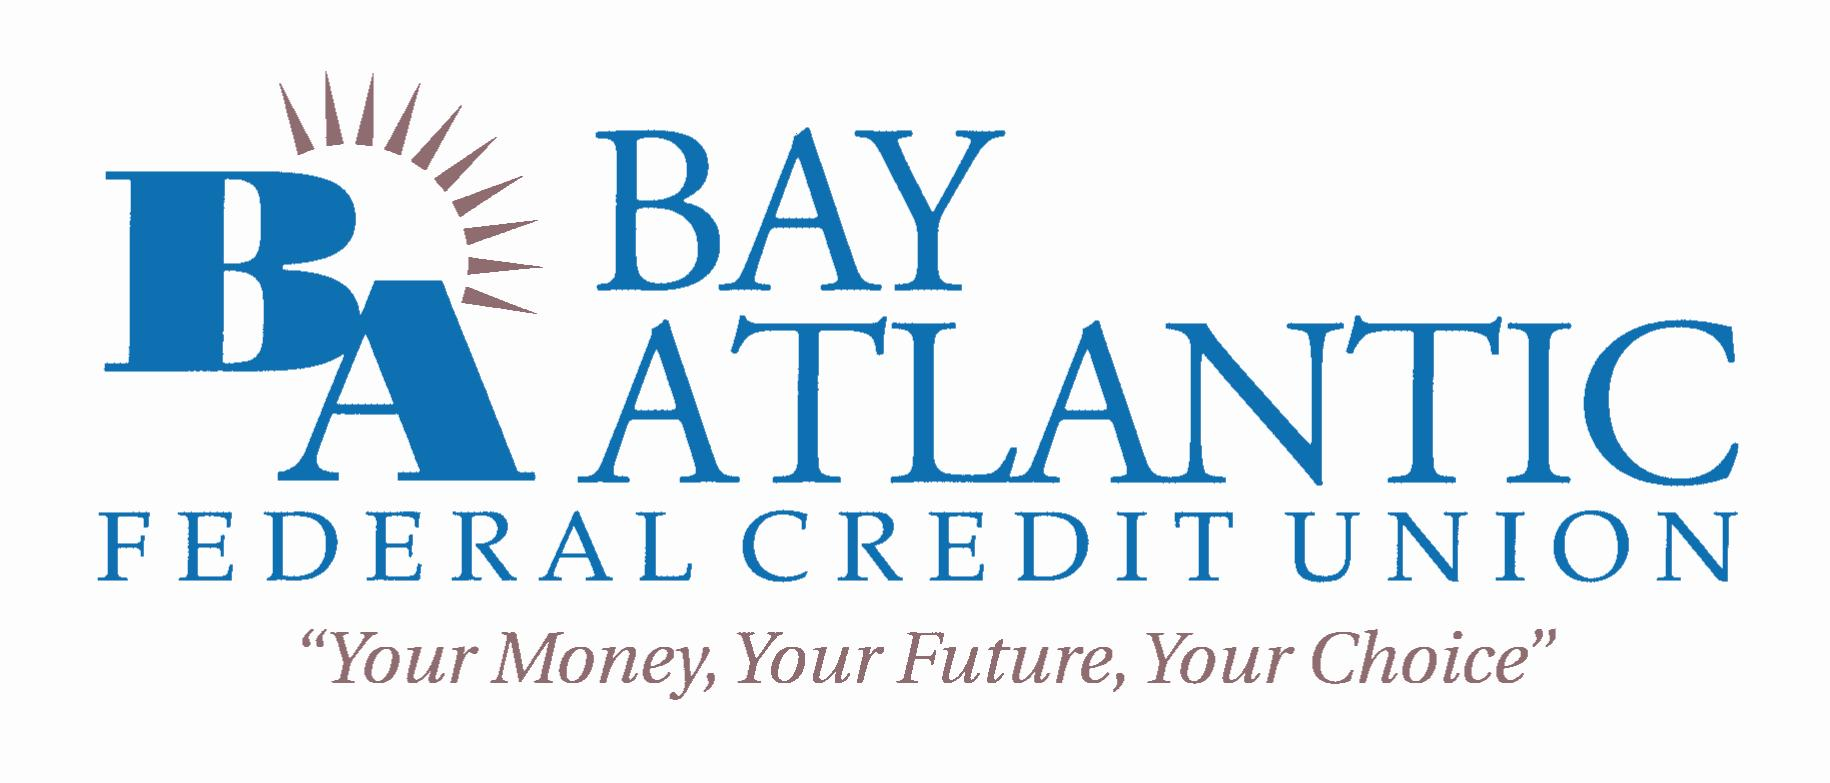 Bay Federal Credit Union Logo photo - 1